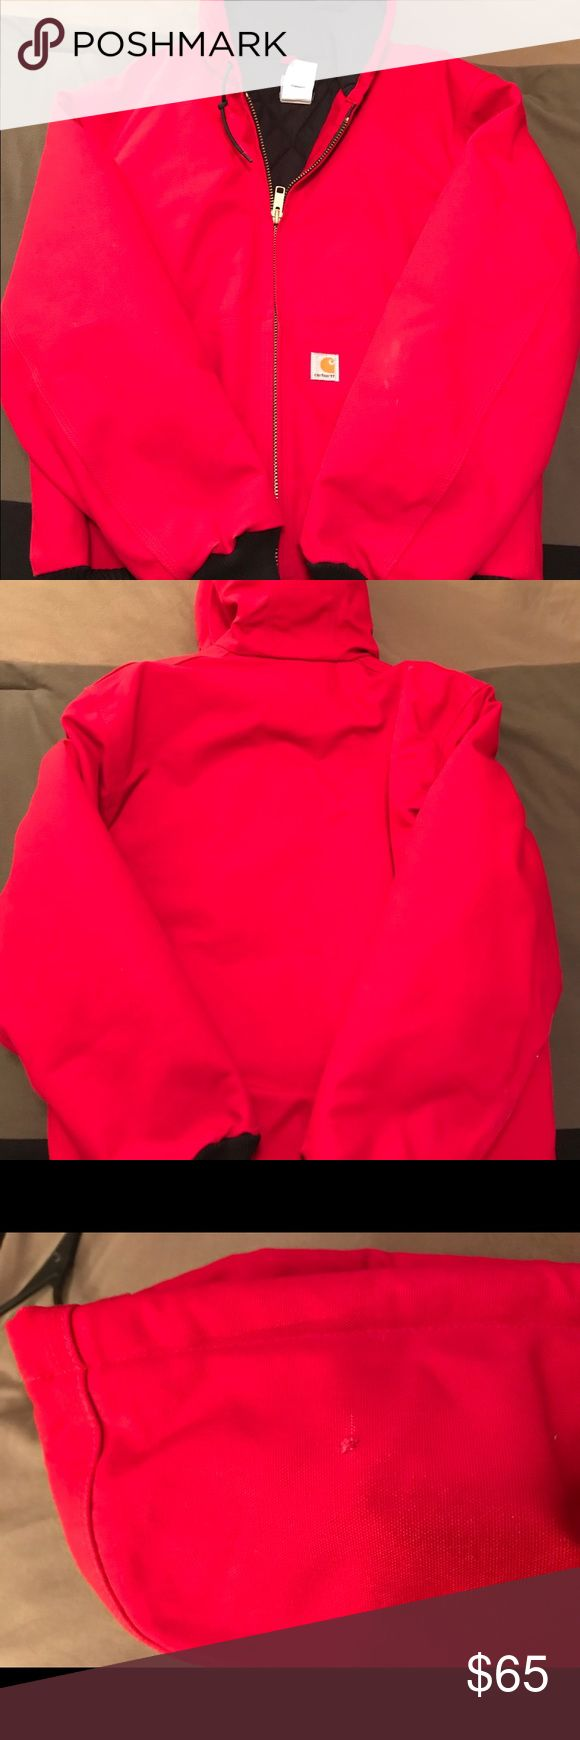 Carhartt Duck Active Jacket This jacket is in great condition! It has one snag on the hood as is listed in the pictures but it's comfortable, warm and perfect for fall/winter weather! The red stands out and is perfect for supporting your favorite sports team! Carhartt Jackets & Coats Utility Jackets